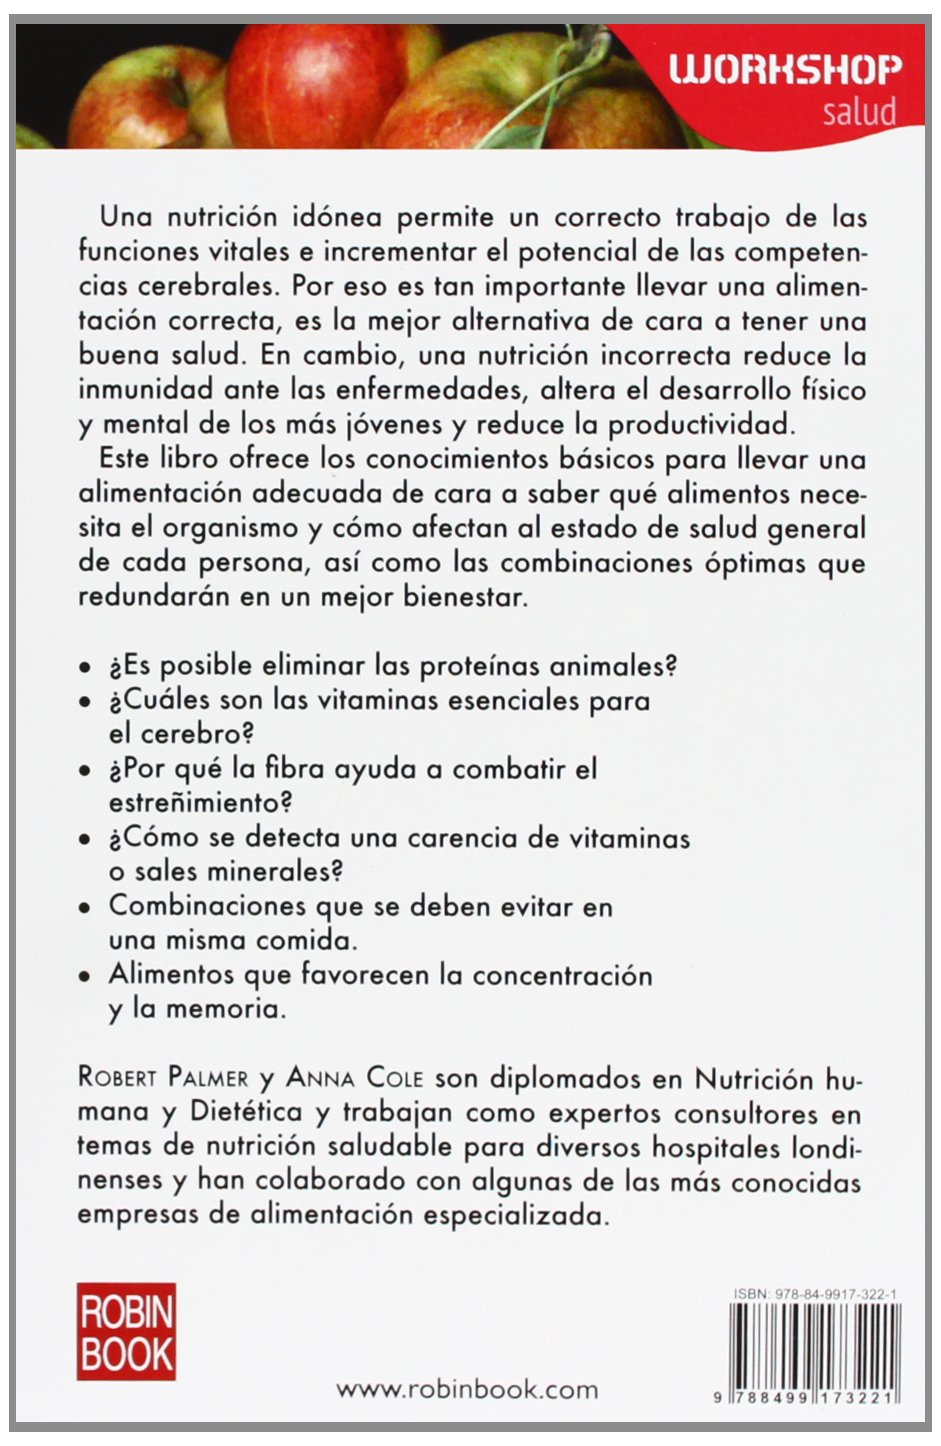 La alimentación energética (WORKSHOP - Salud) (Spanish Edition): Robert Palmer, Anna Cole: 9788499173221: Amazon.com: Books